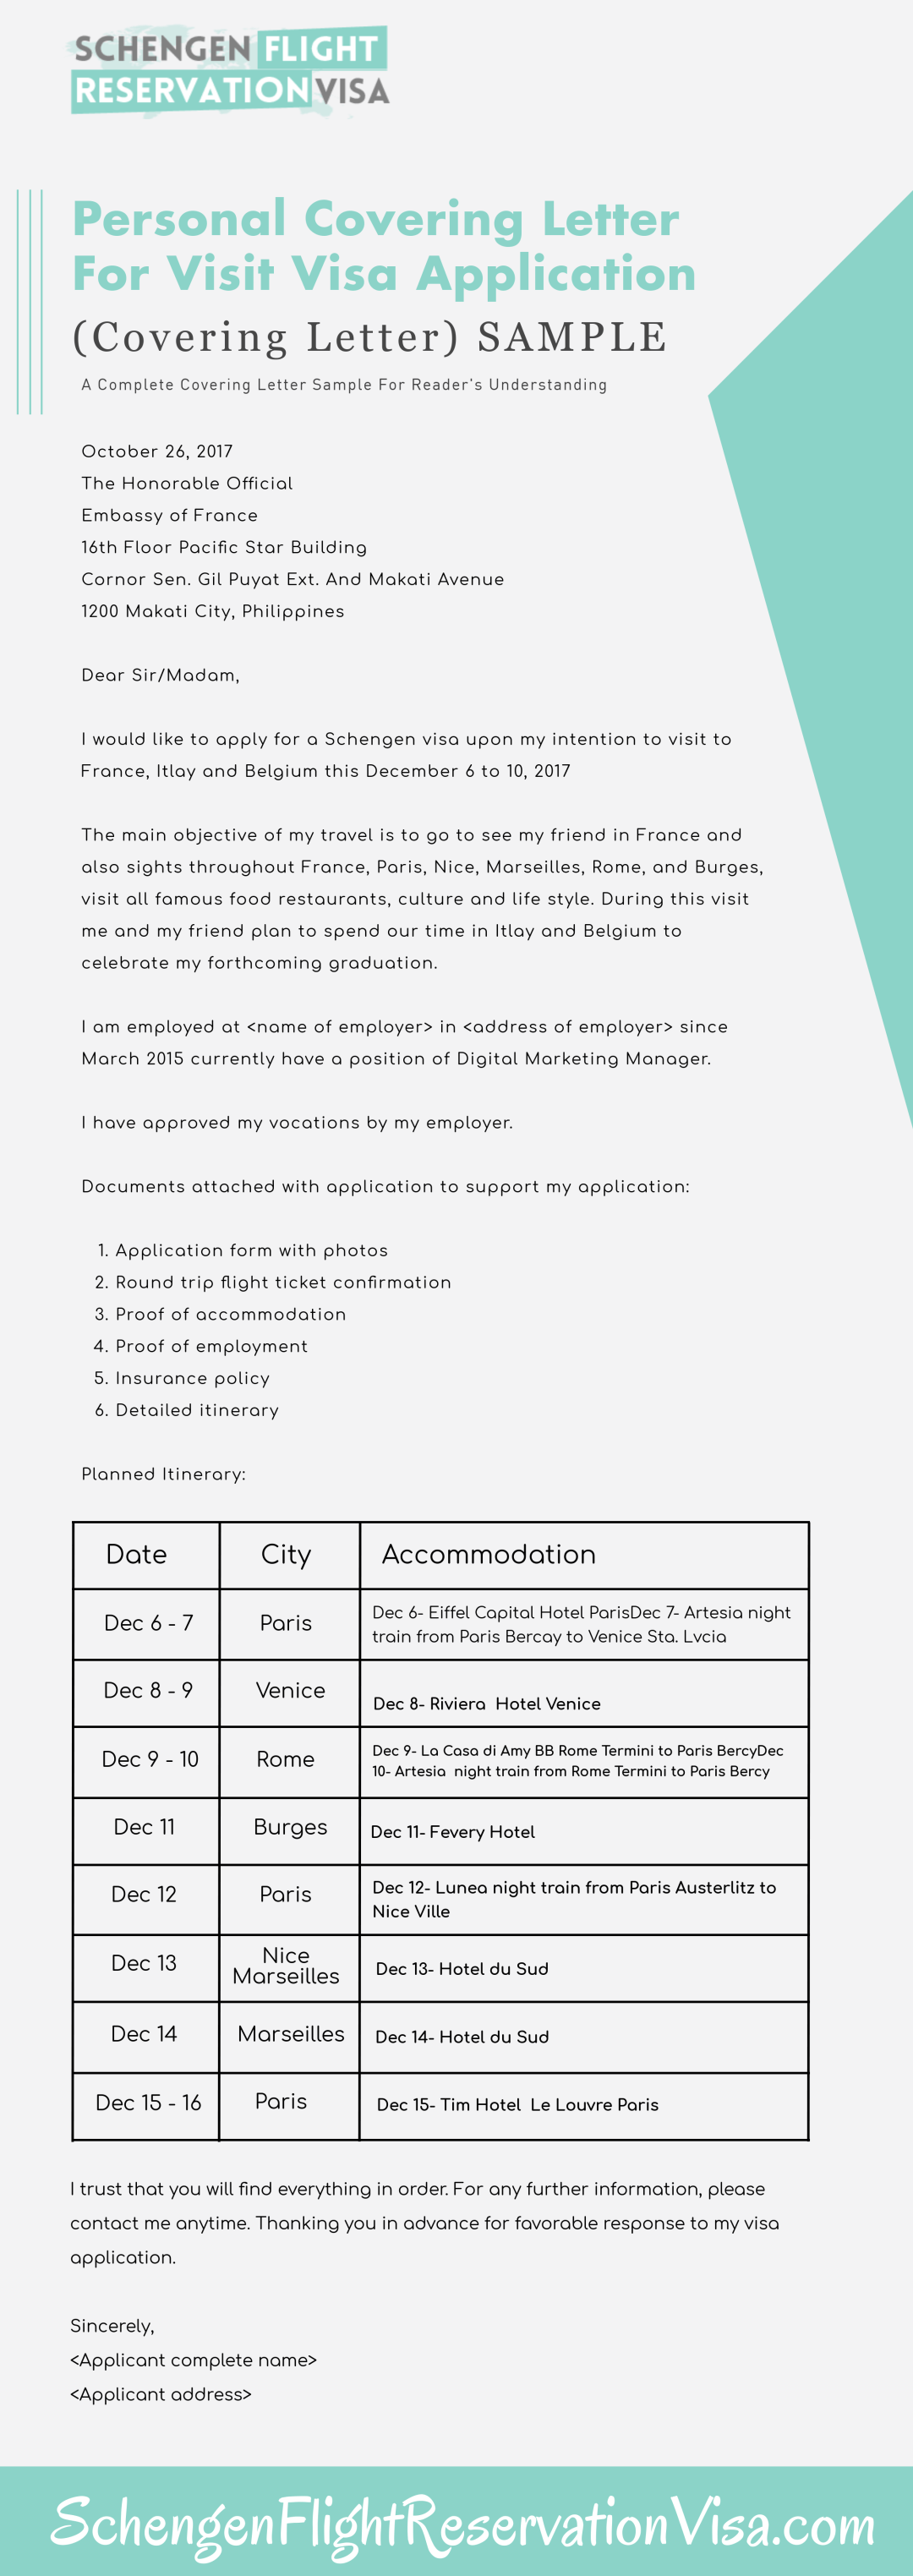 Personal covering letter guide and samples for visa application process personal covering letter for visit visa application altavistaventures Choice Image